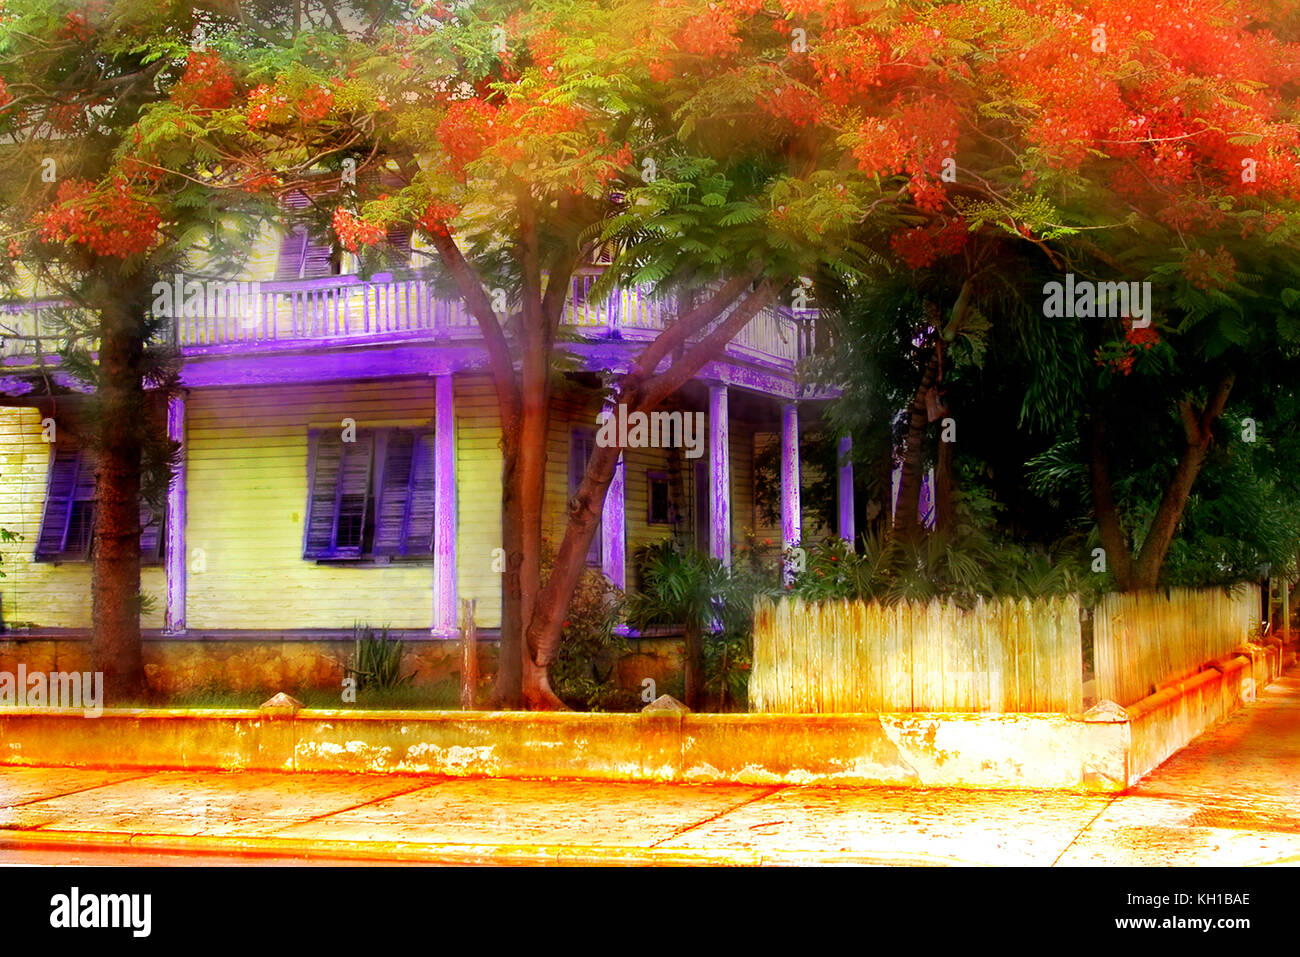 Old Key West Victorian home, Key West, Florida - Stock Image